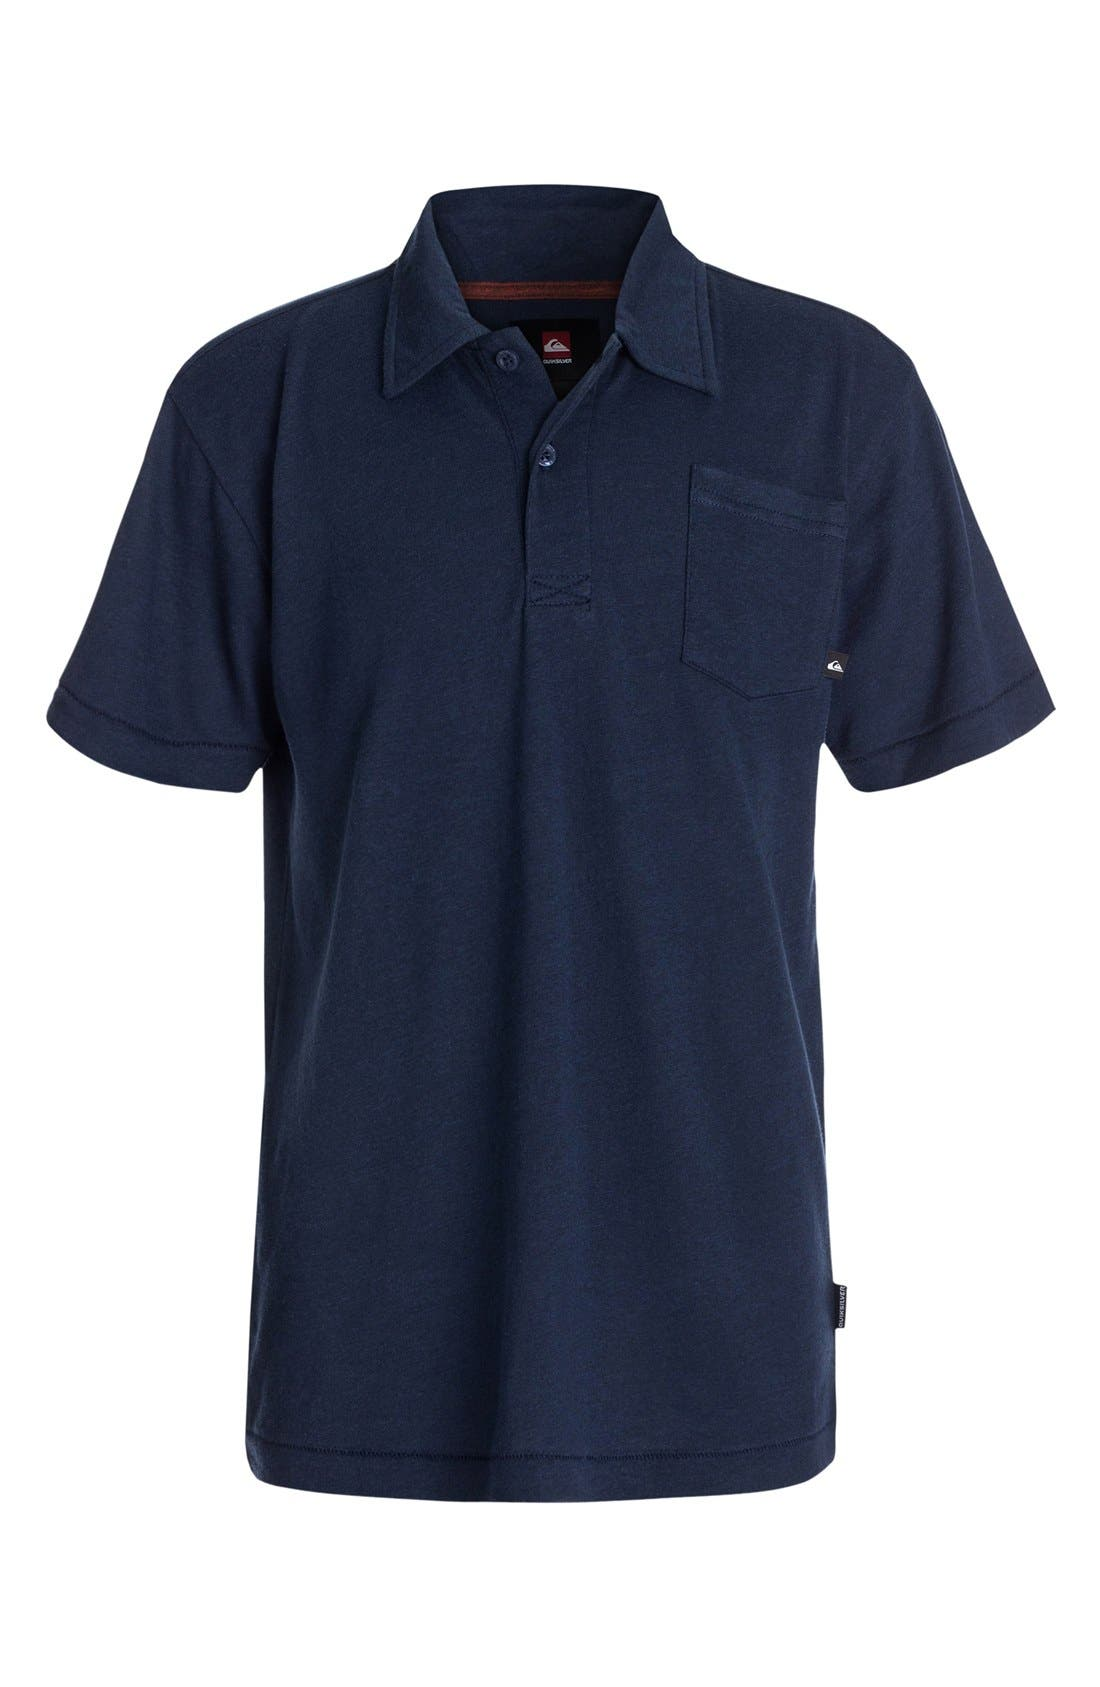 Main Image - Quiksilver 'Core' Cotton Blend Jersey Polo (Baby Boys) (Online Only)